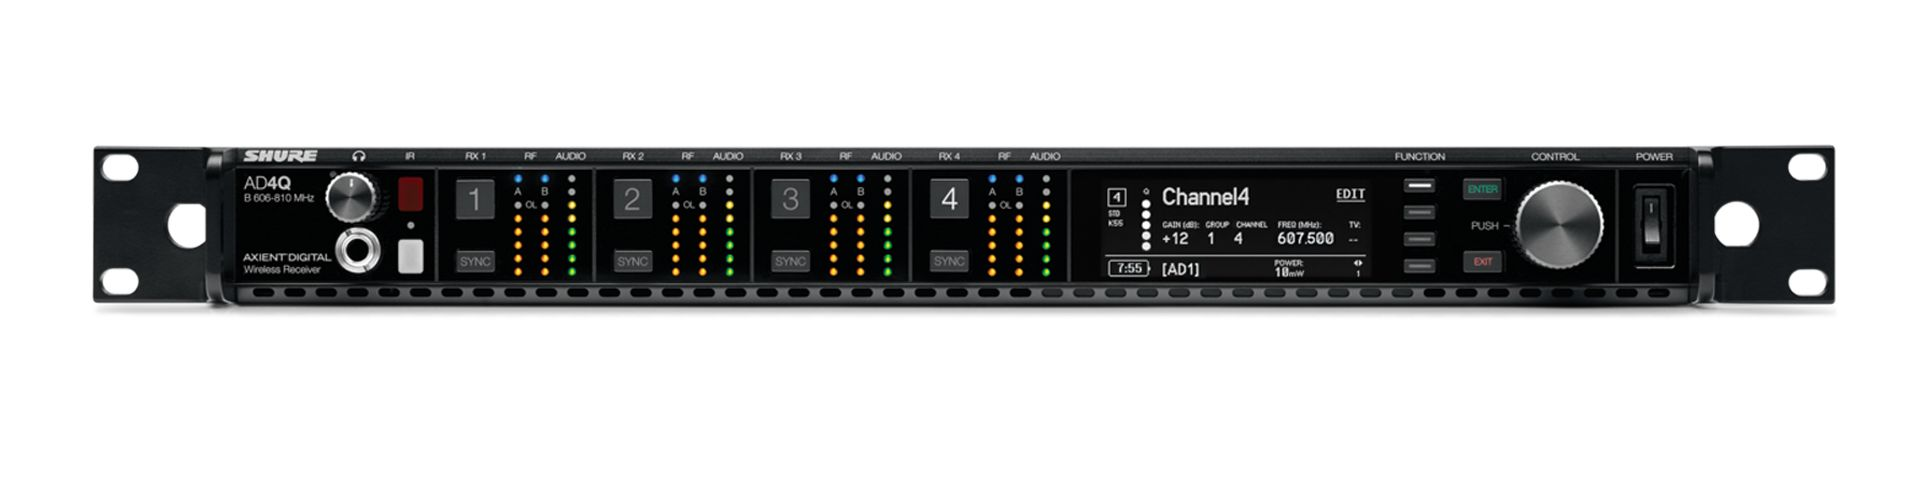 Shure Axient Digital AD4Q Receiver at Hollywood Sound Systems